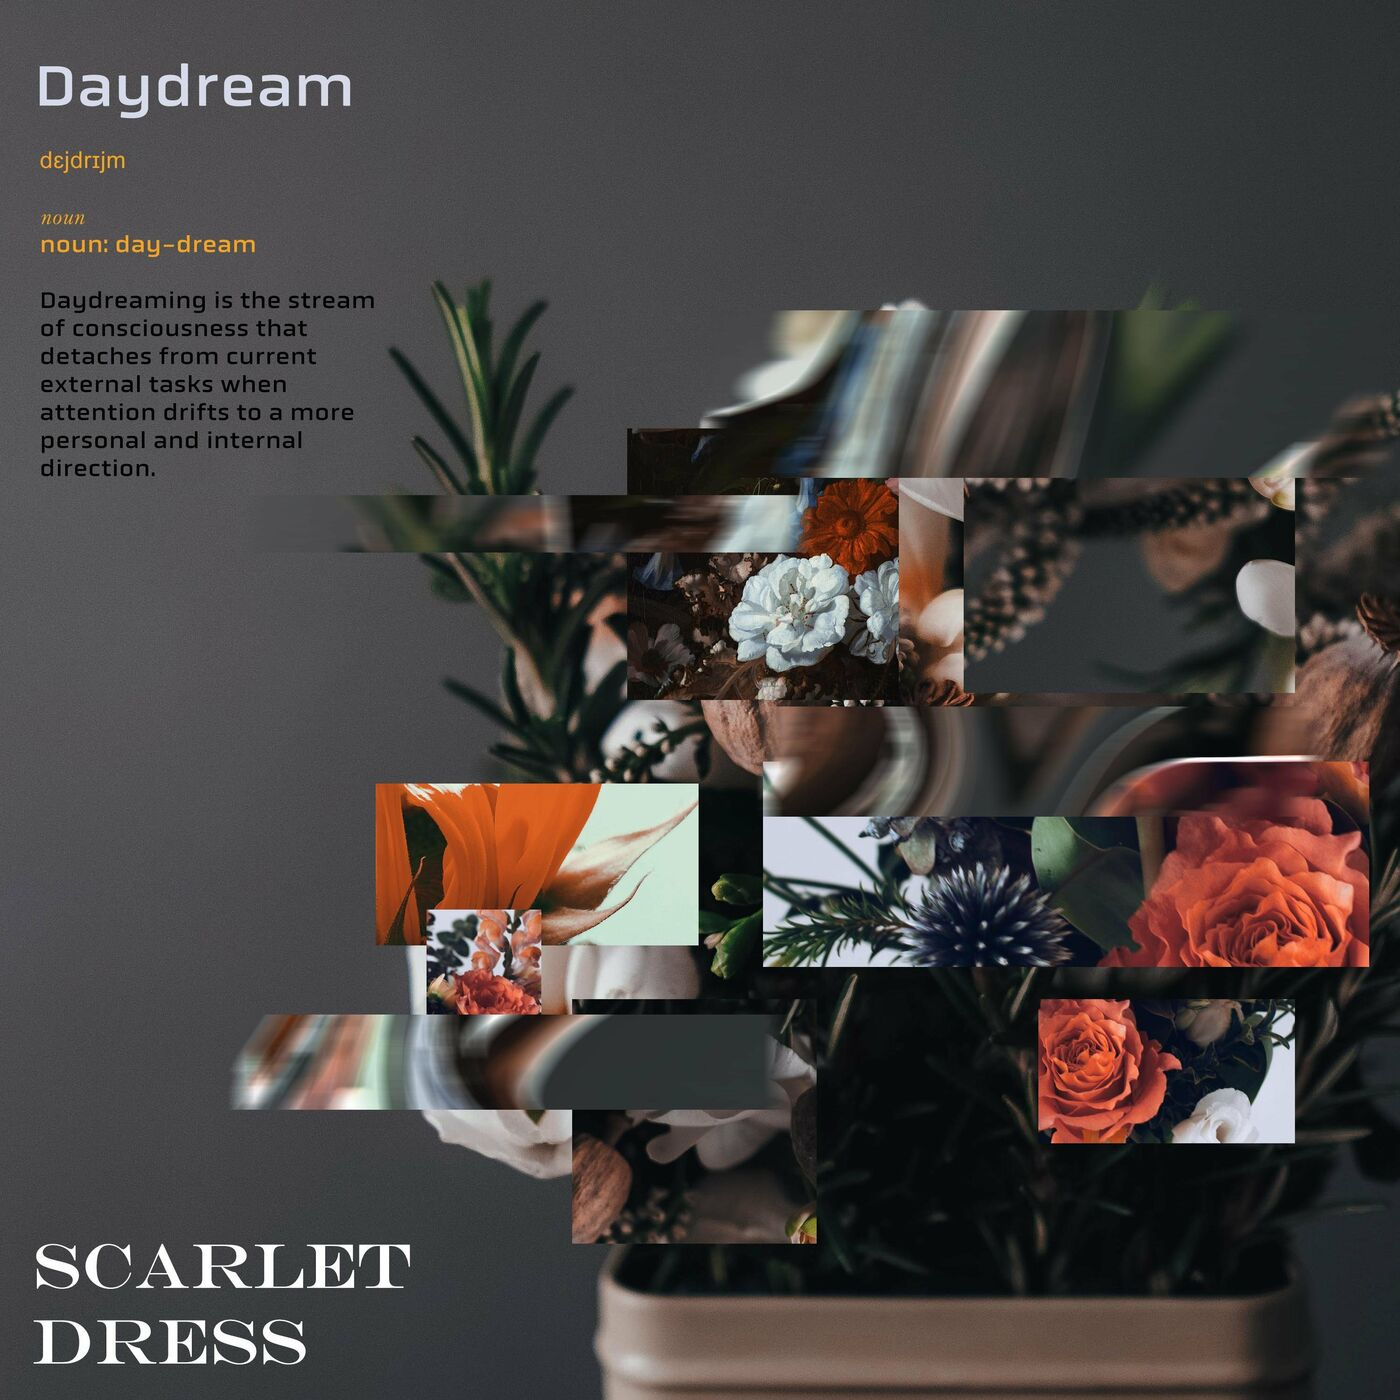 Scarlet Dress - Daydream [single] (2021)